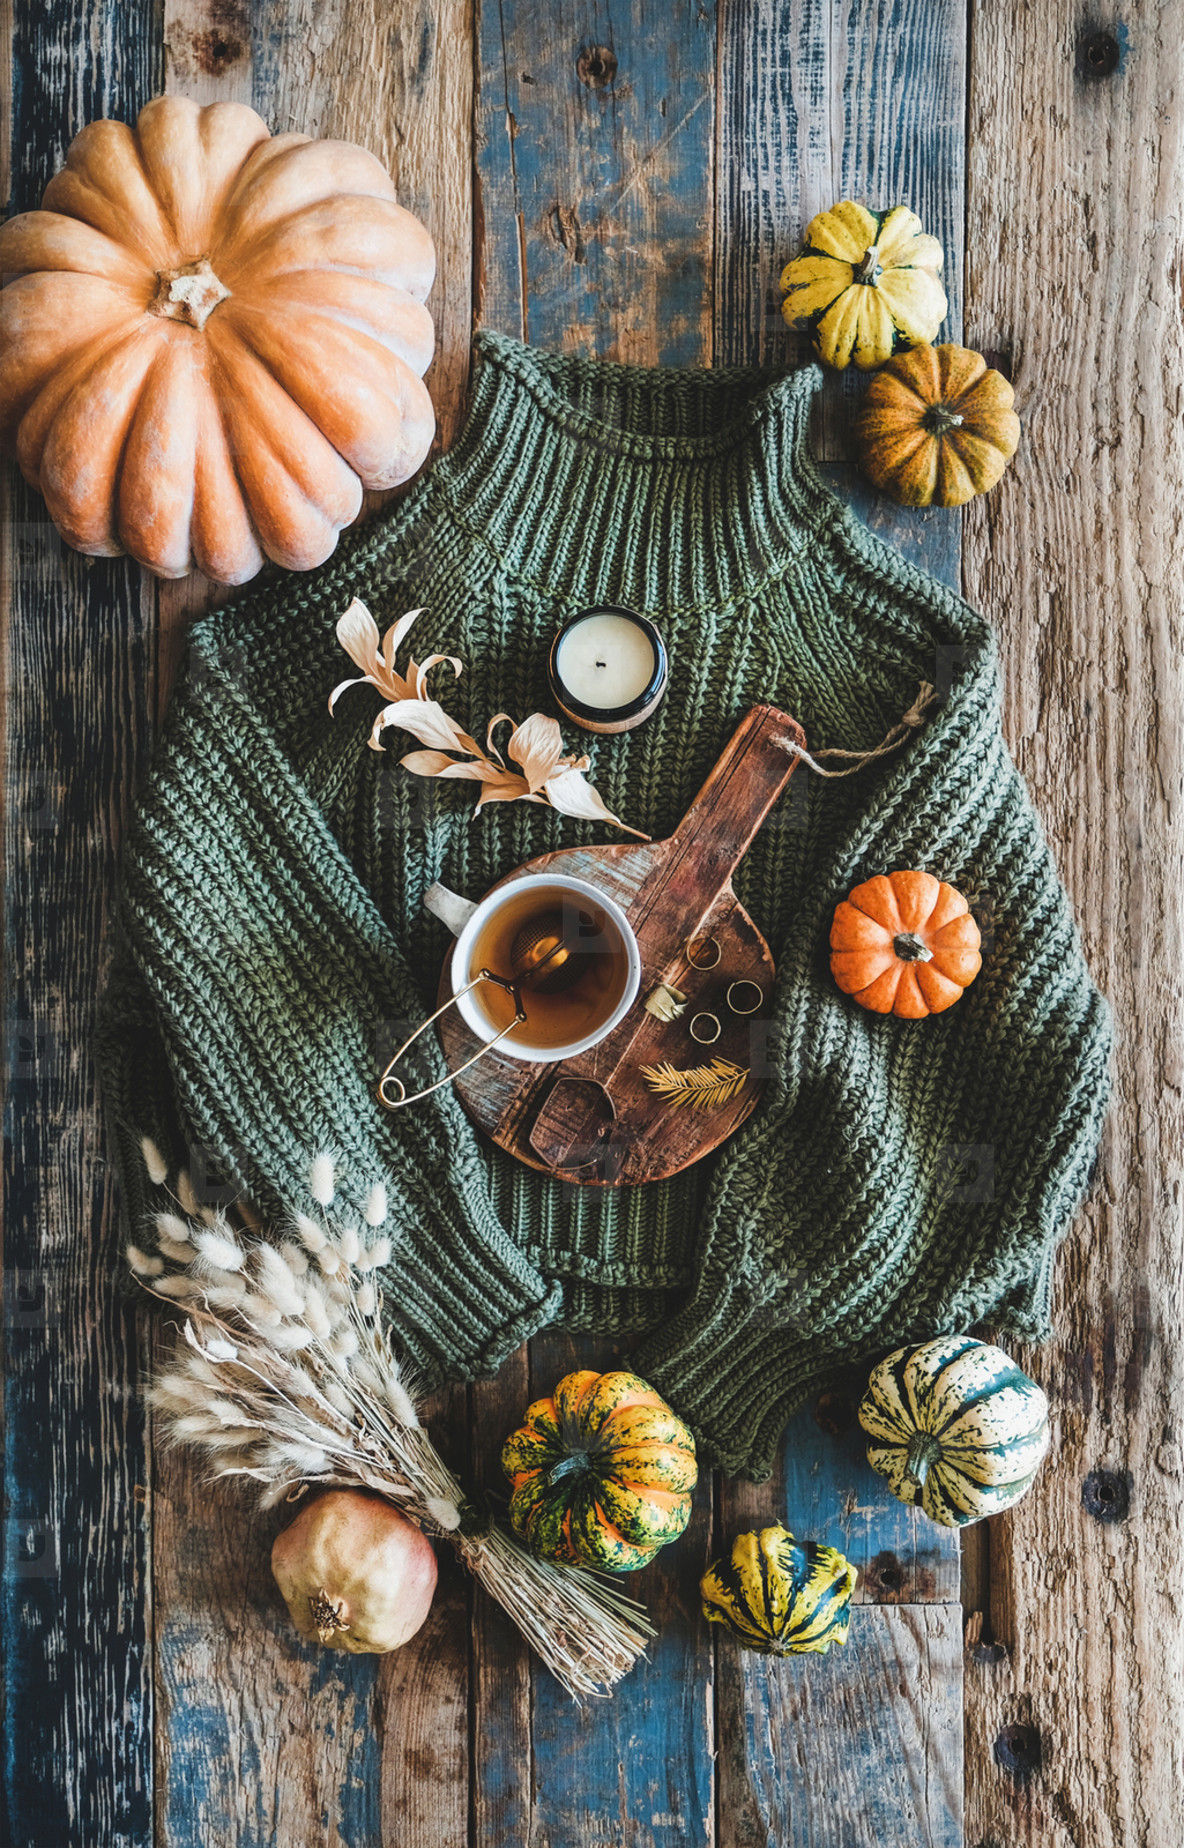 Green sweater and accessories over rustic wooden background  top view